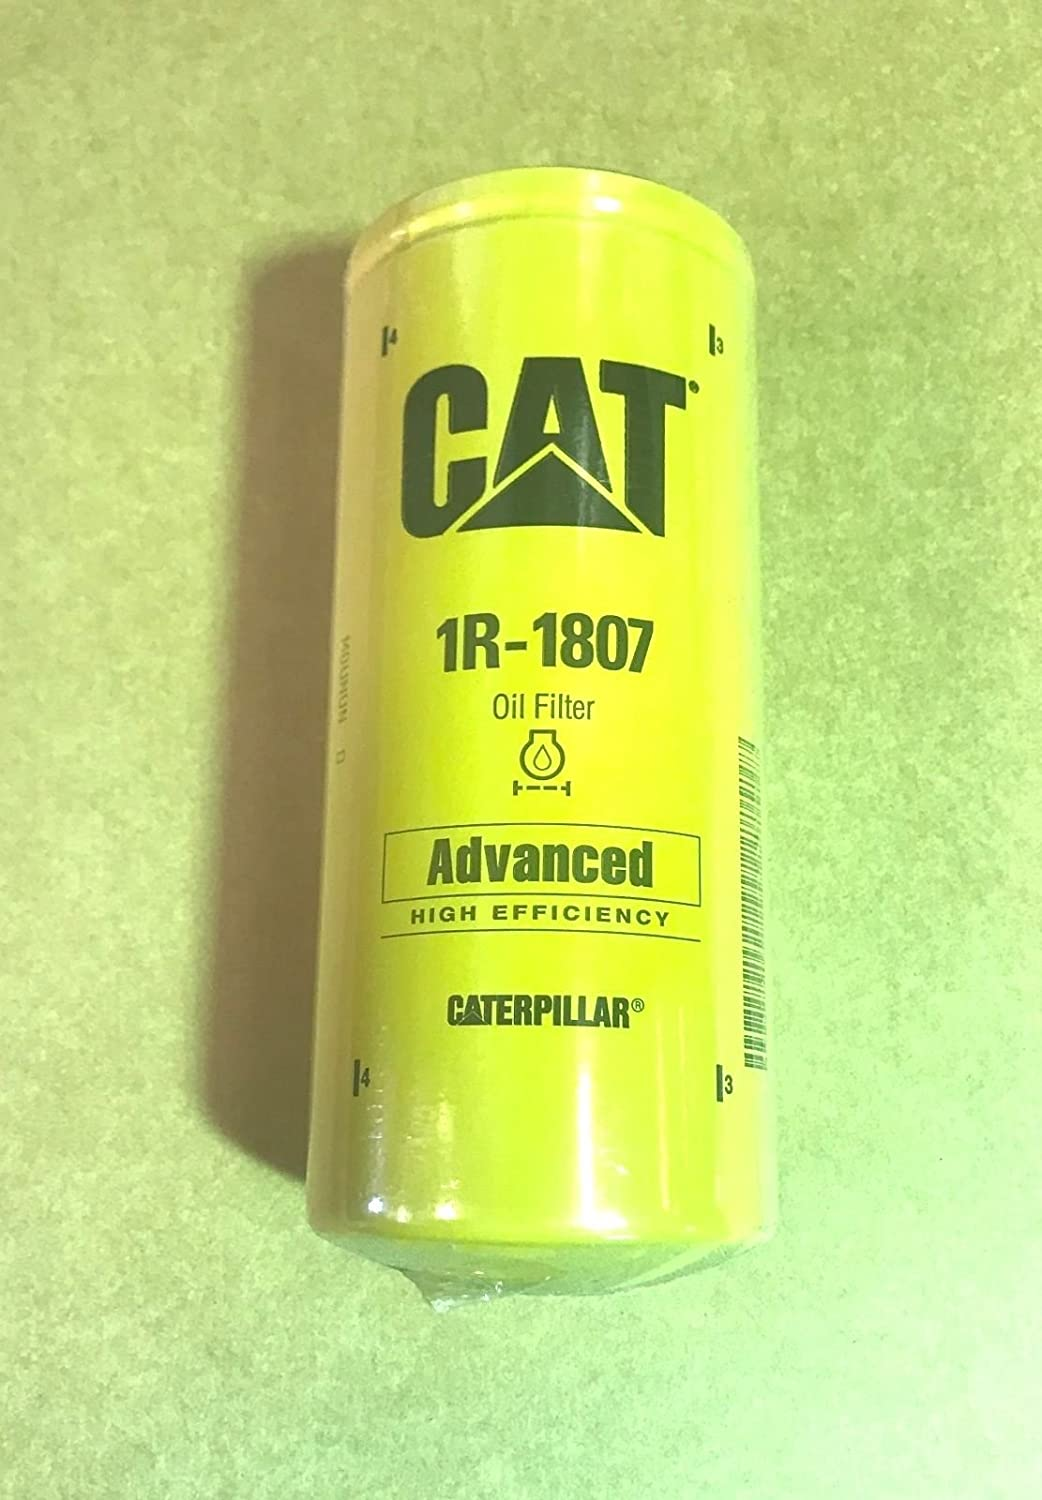 Caterpillar 1r 1807 Advanced High Efficiency Oil Filter 3126 Fuel Truck Pack Of 1 Automotive